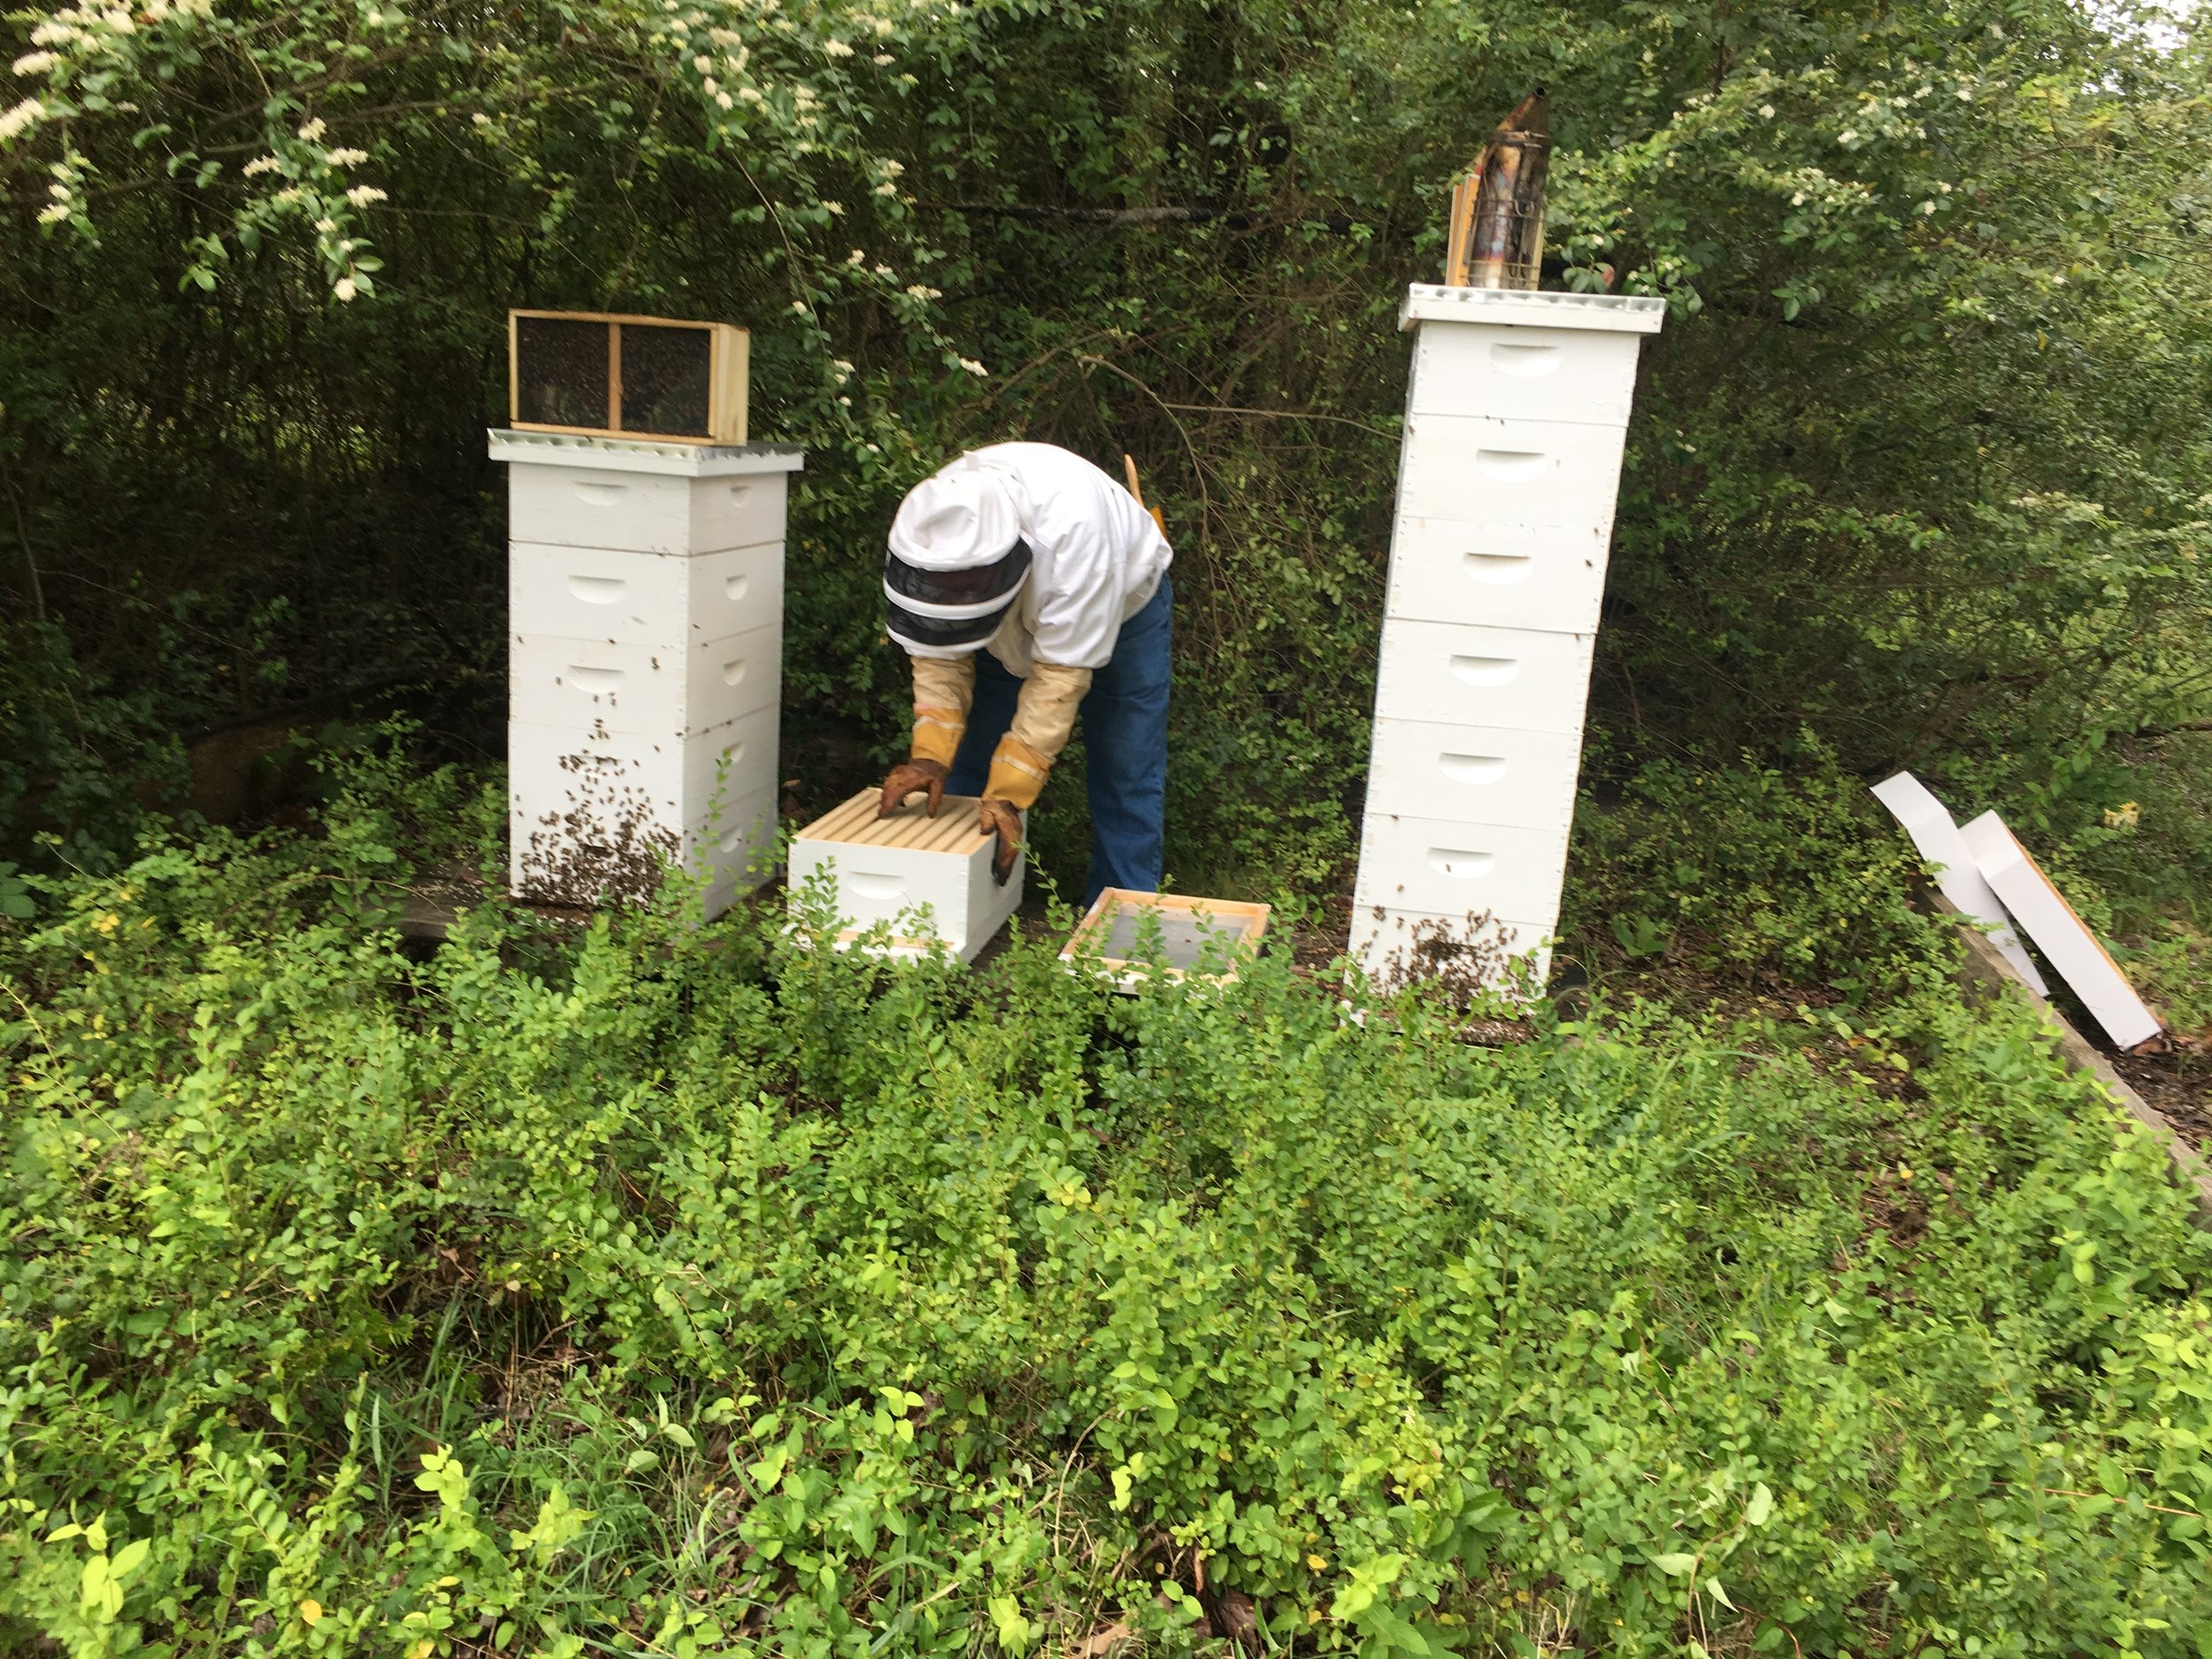 Richard Underhill, Master Beekeeper, and the Hutchison Apiary